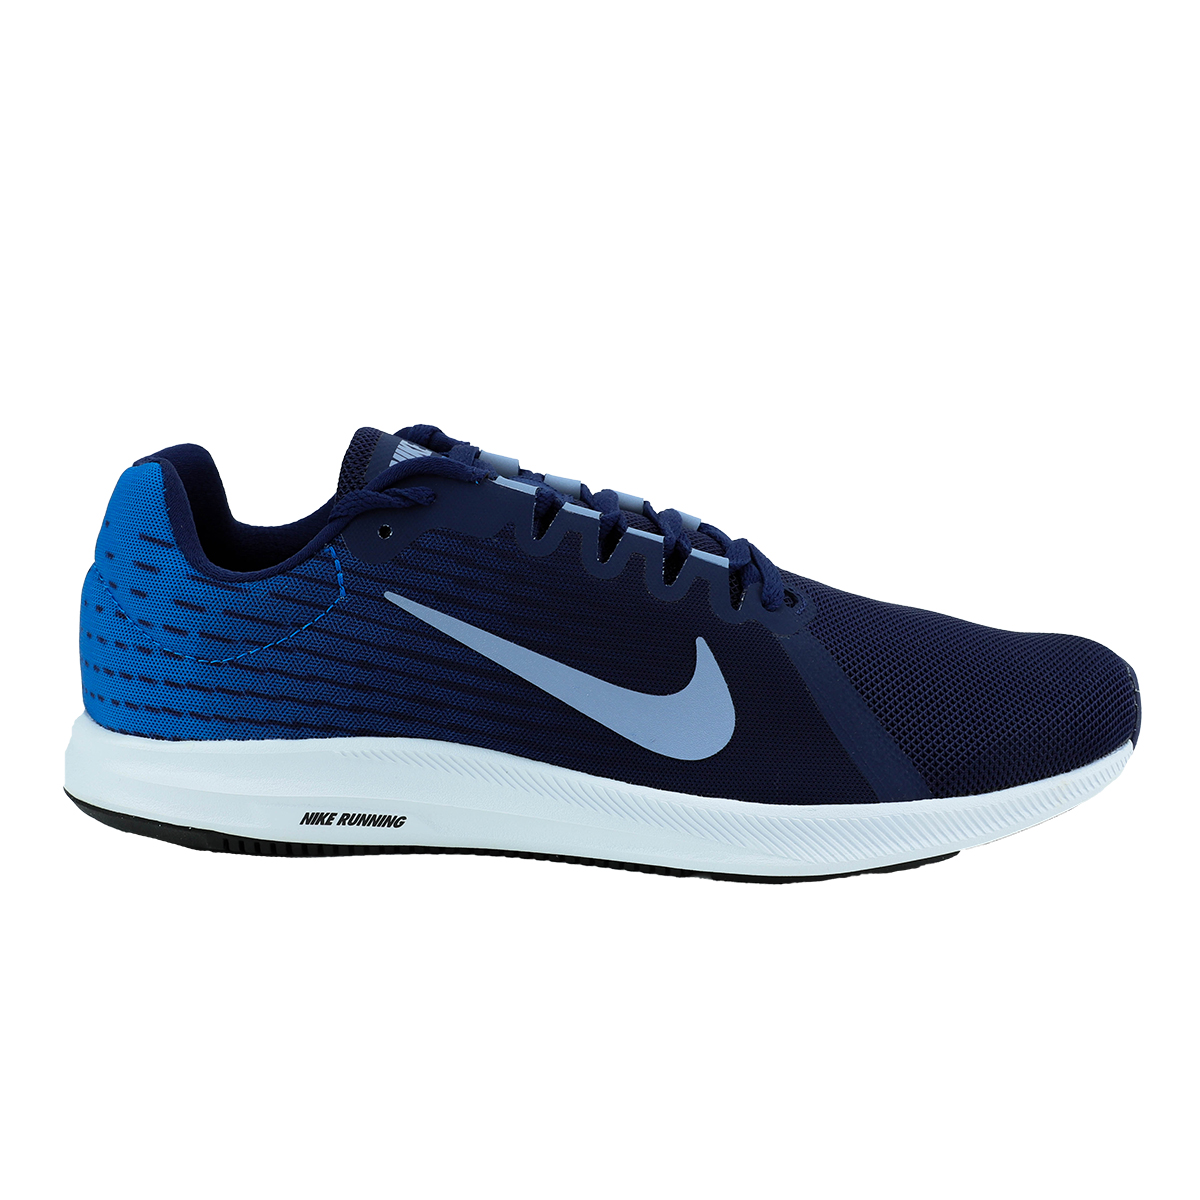 Nike-Men-039-s-Downshifter-8-Running-Shoes thumbnail 9